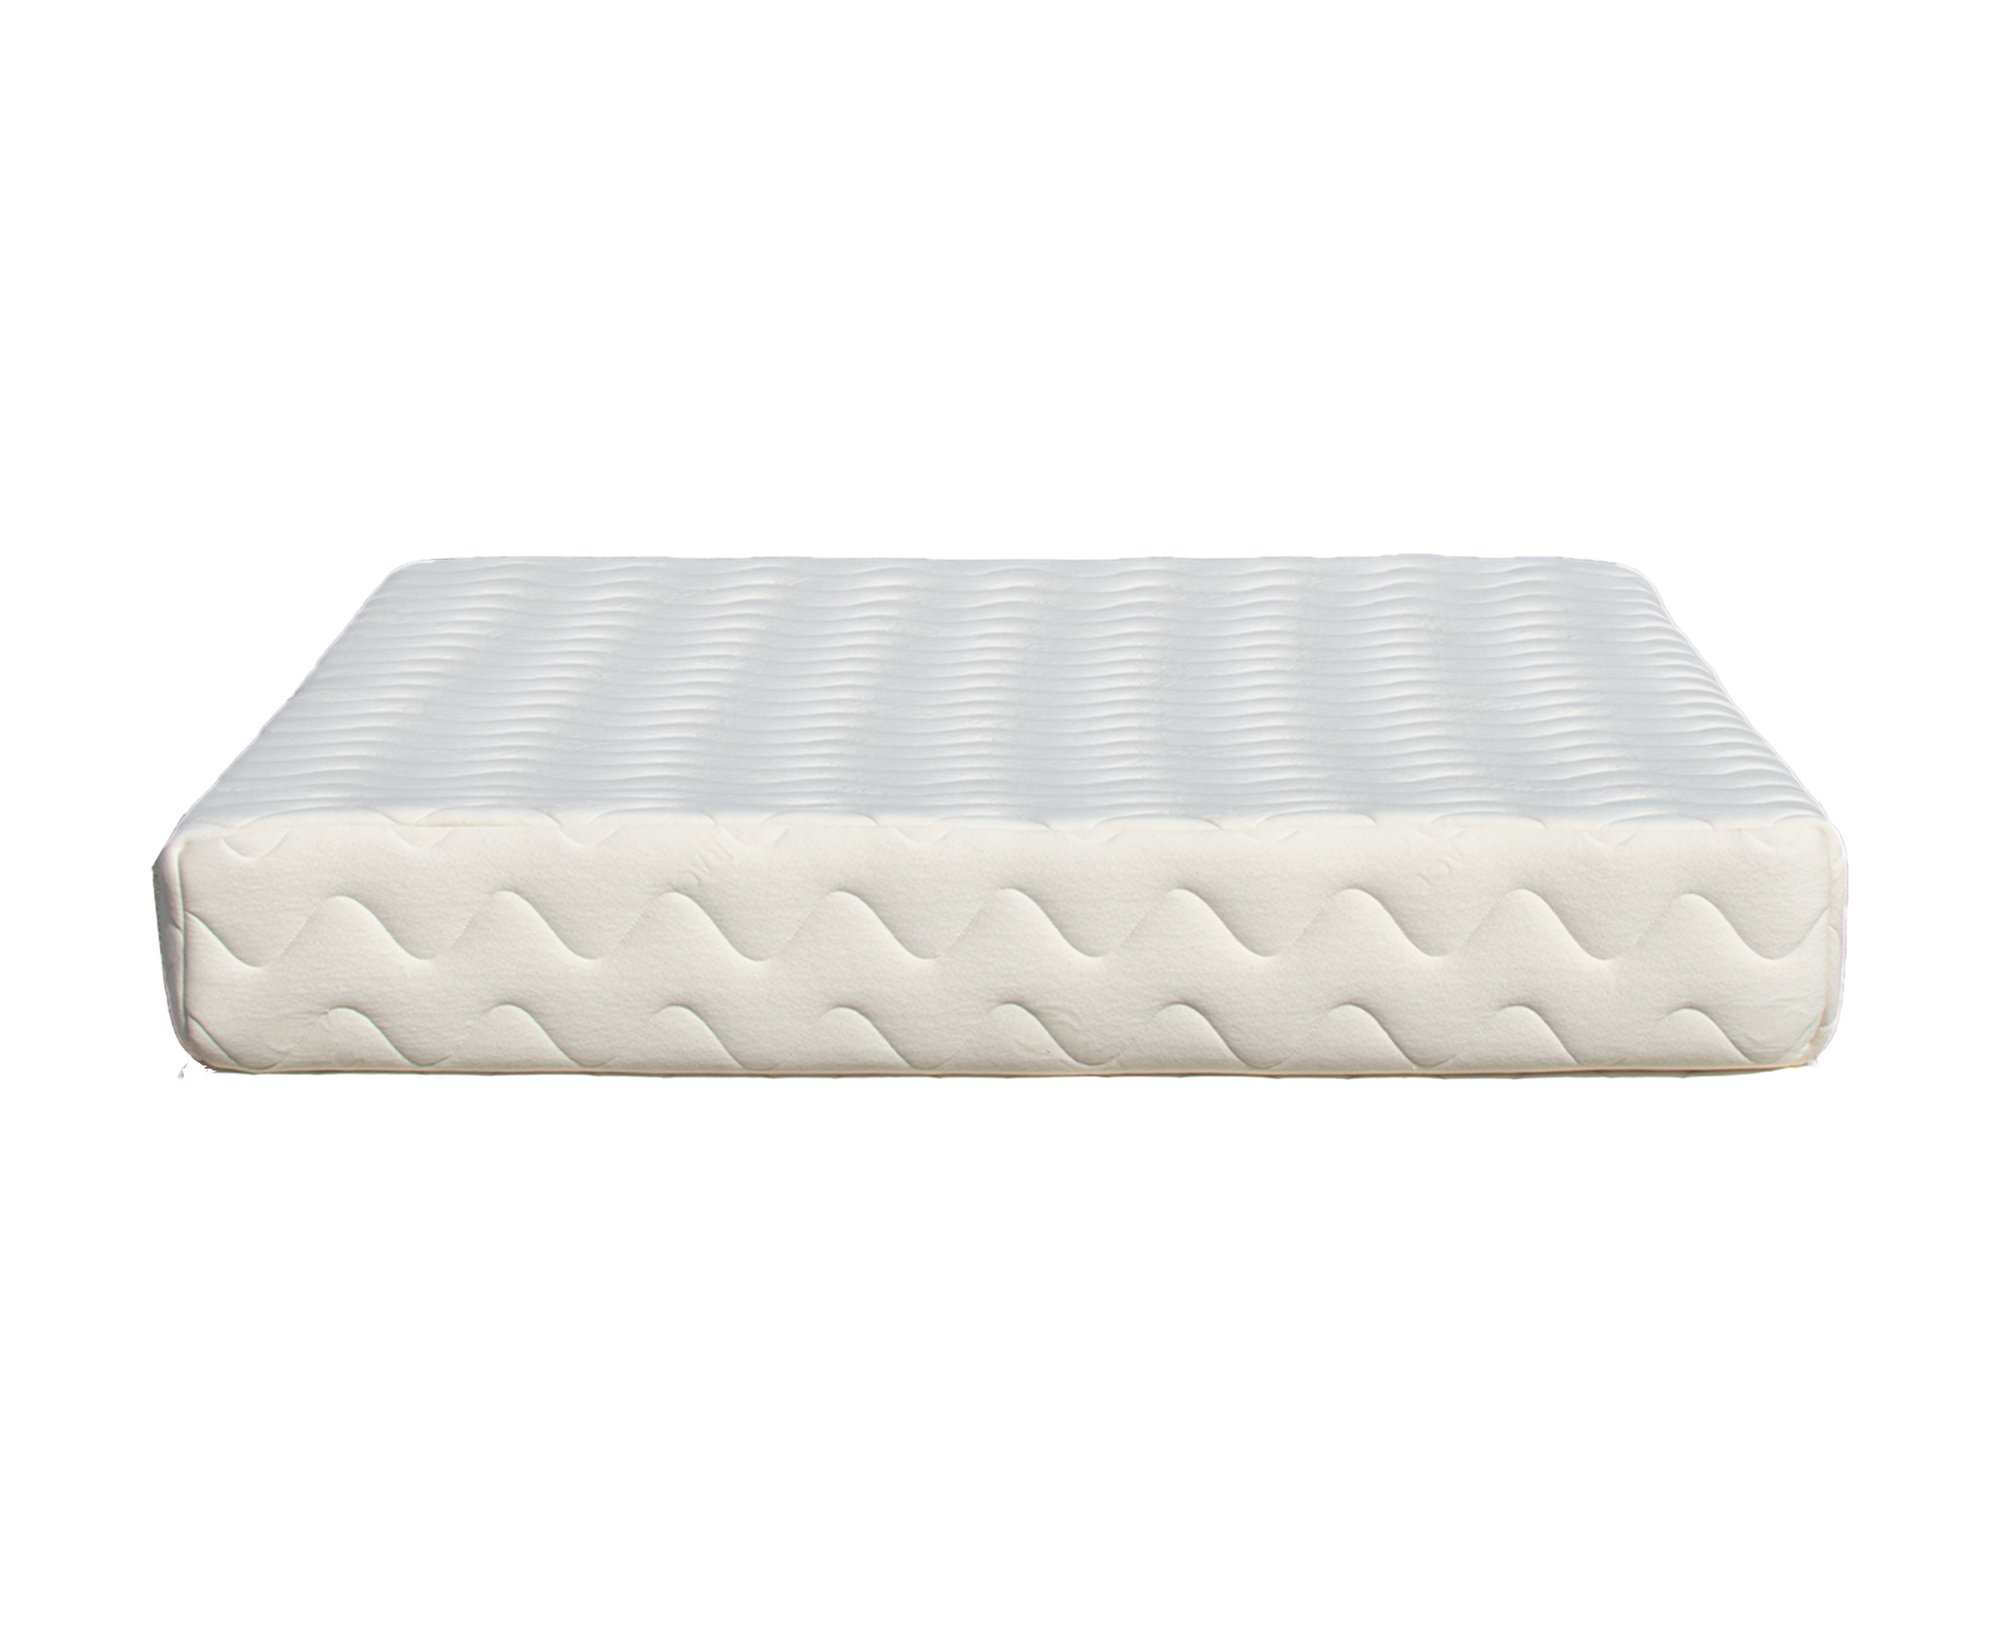 Rubber Mattress Adult Size Organic Mattress Natural Foam Rubber Mattress